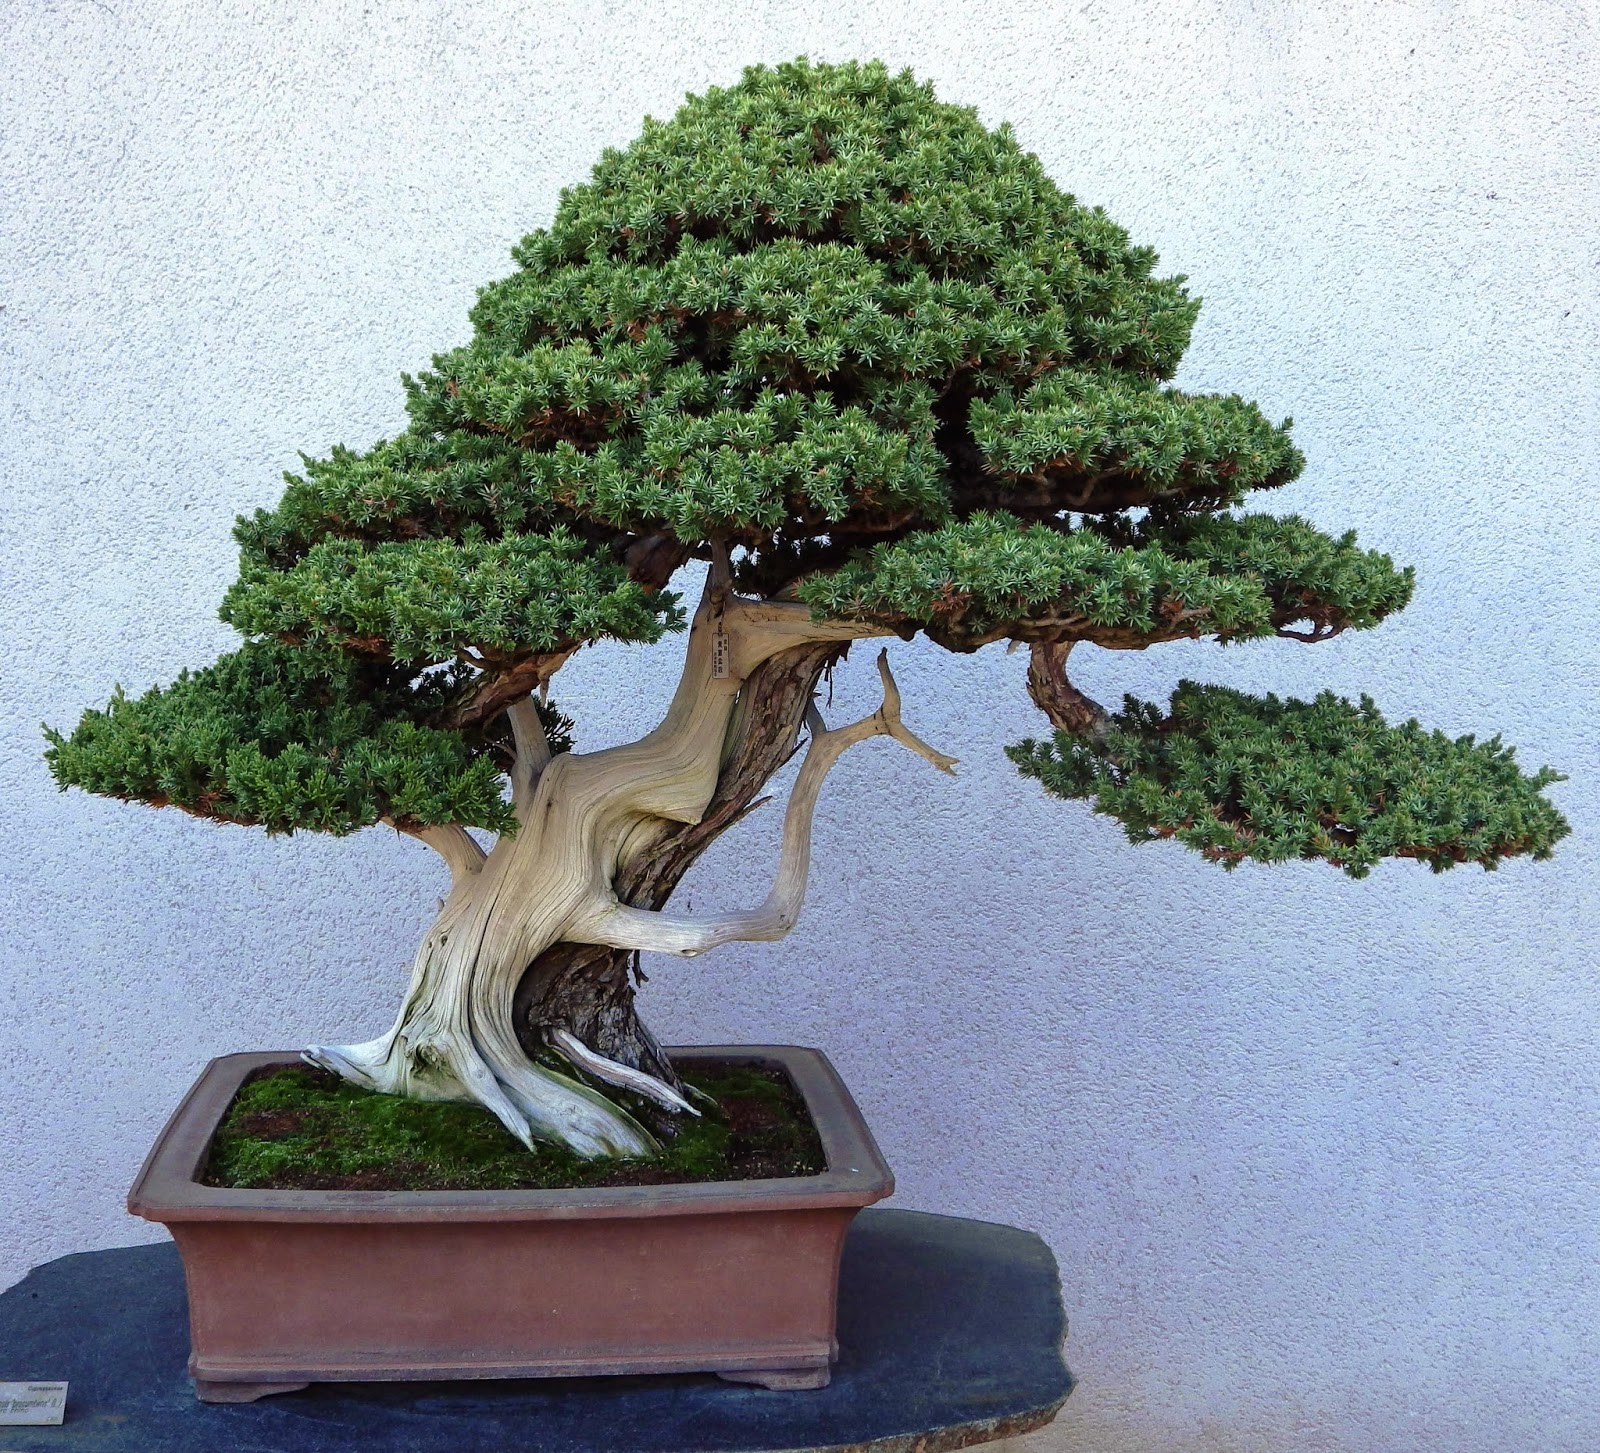 Bespoke Bonsai Stands More Trees From Luis Vallejo39s Estudio